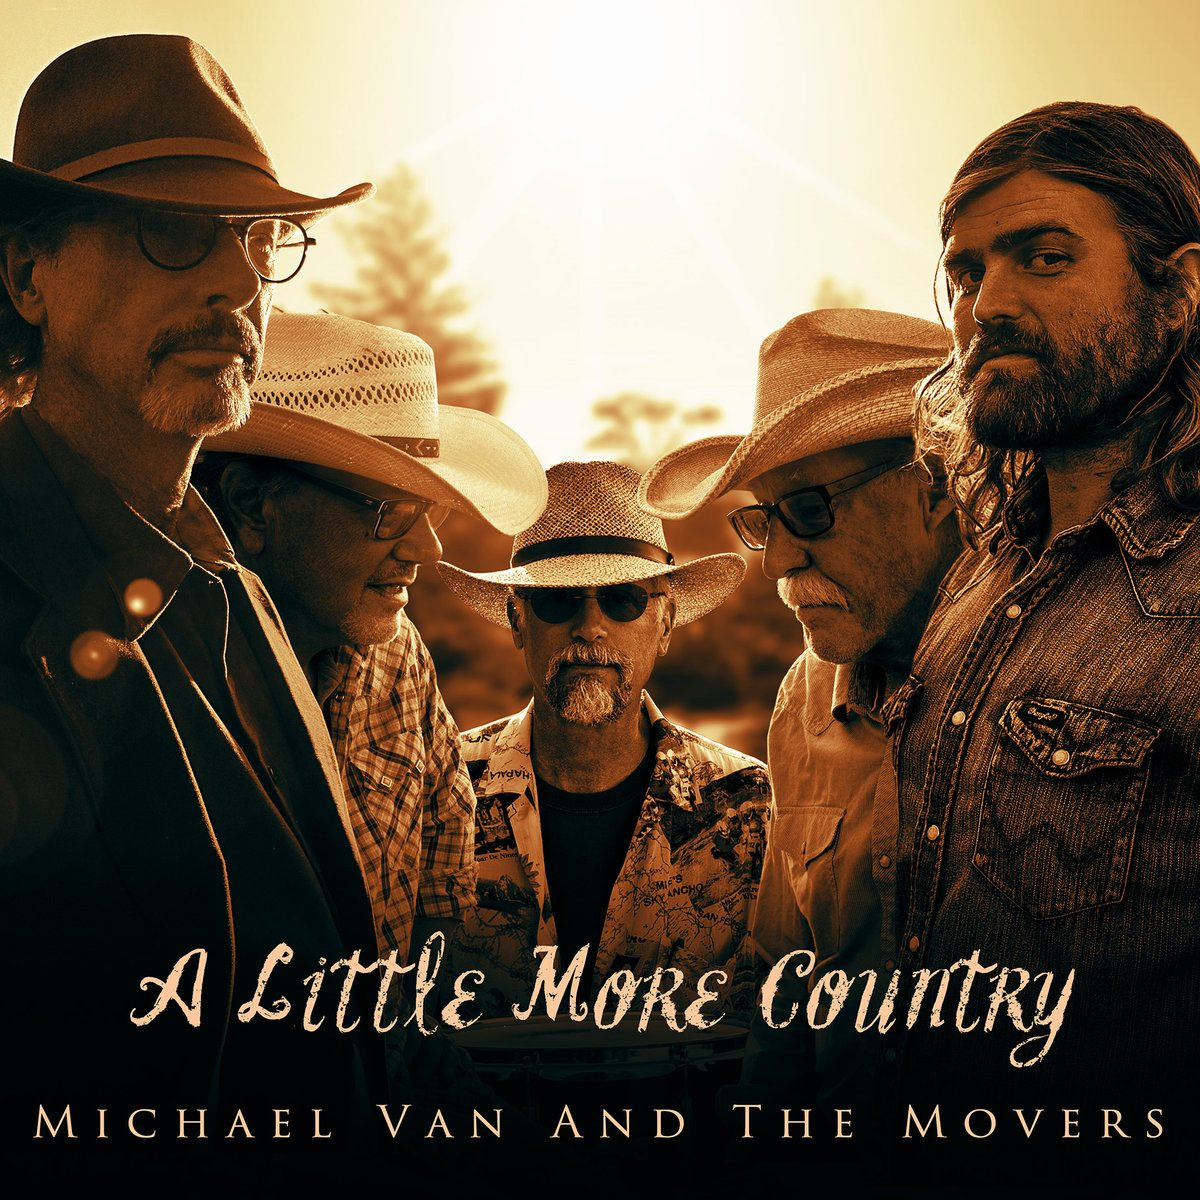 Michael Van and The Movers – A Little More Country